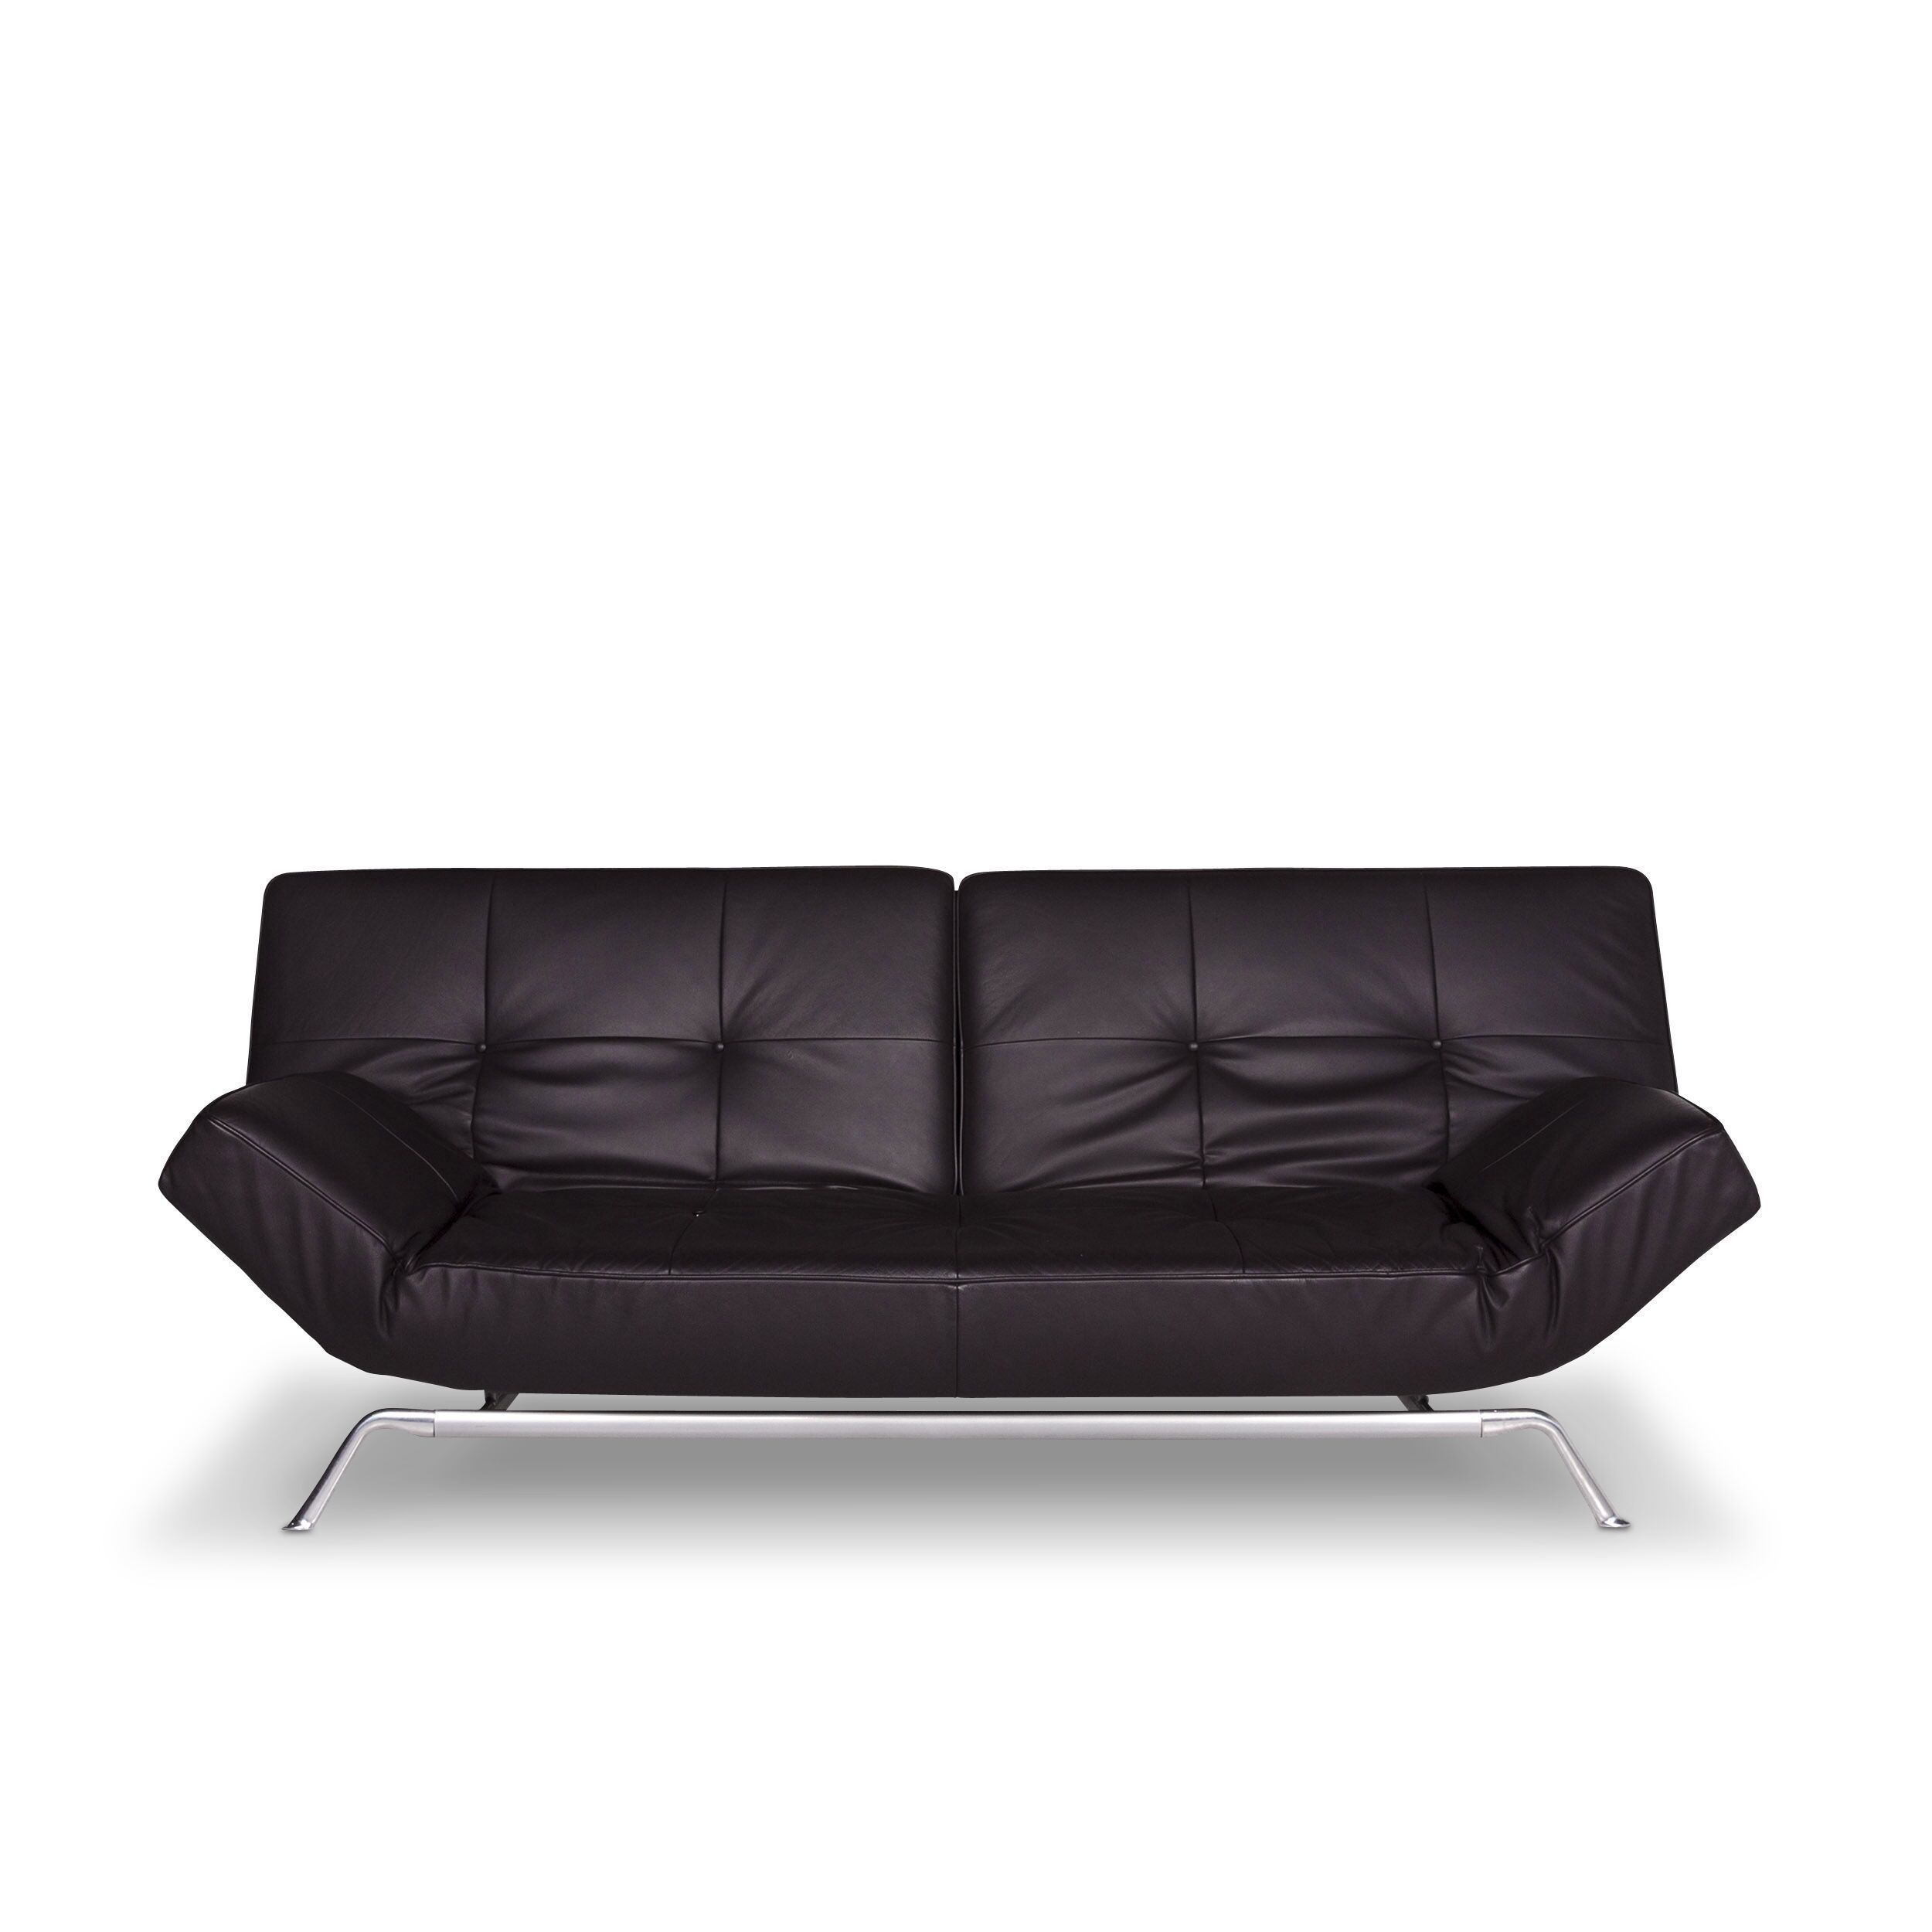 Ligne Roset Smala Designer Leather Sofa Black Two Seater Sofa Bed Couch 9720